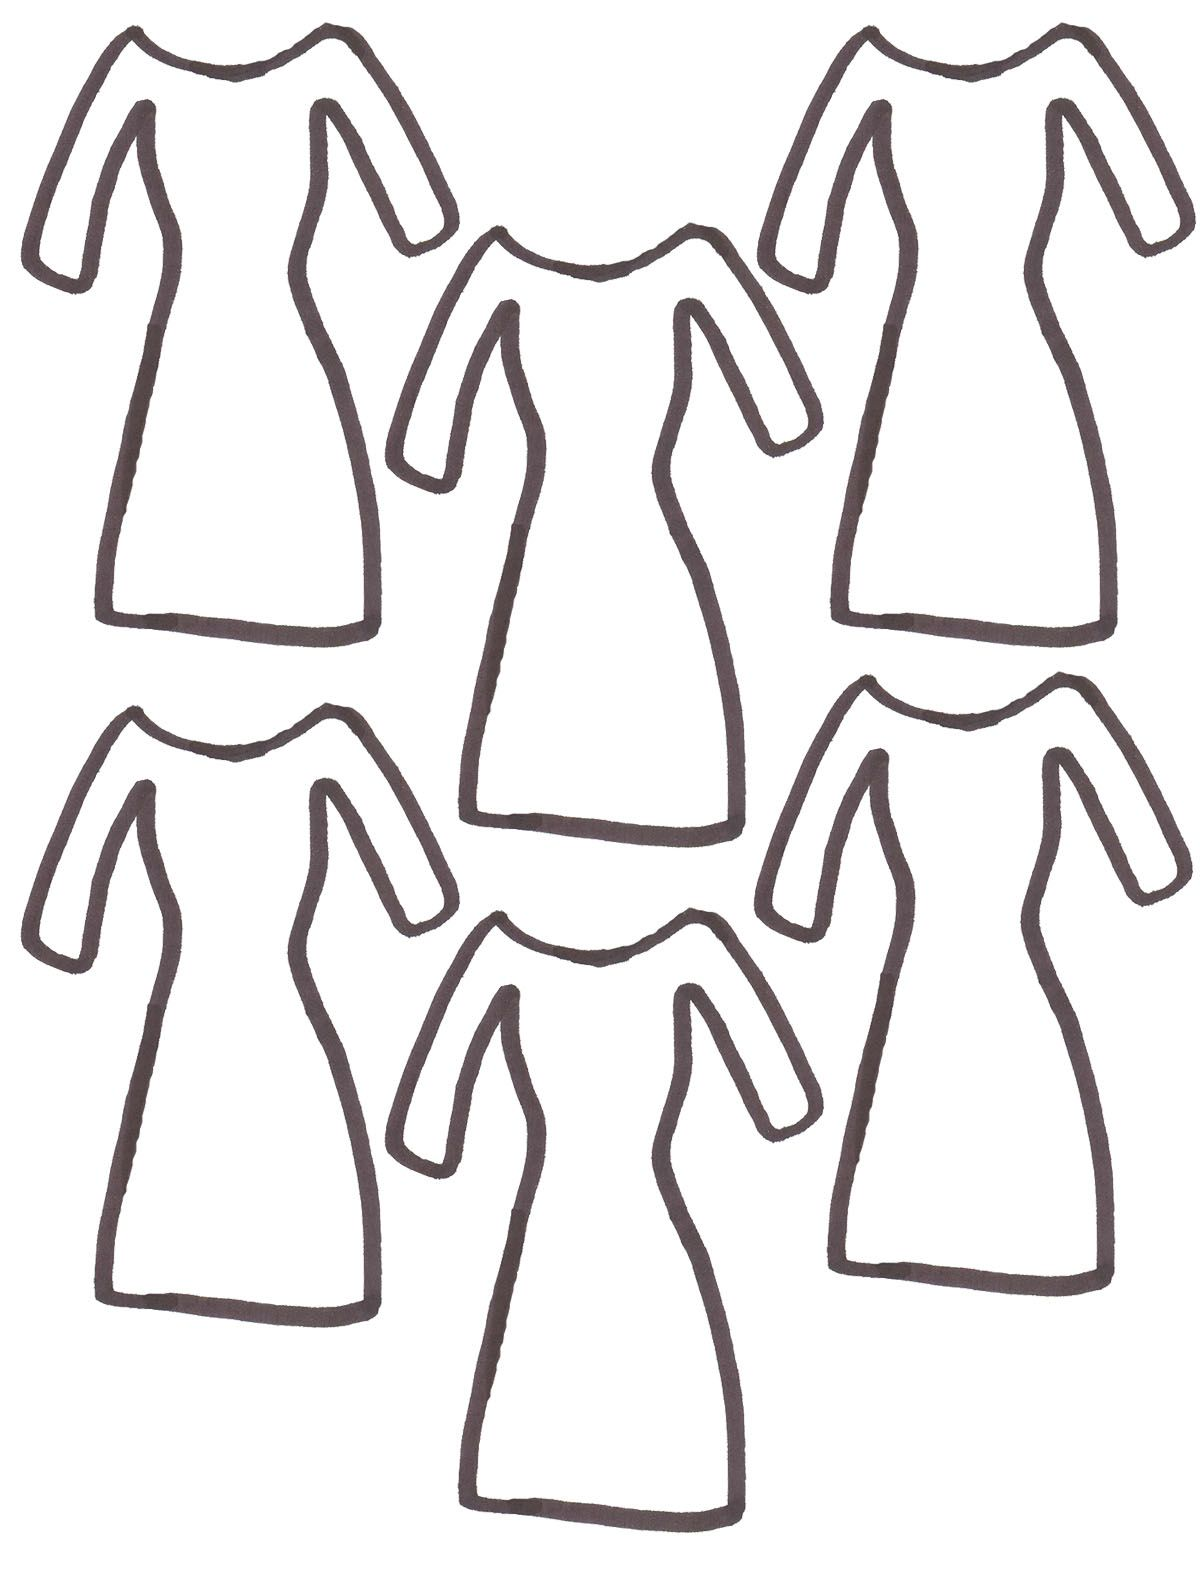 clothes-coloring-page-0004-q1